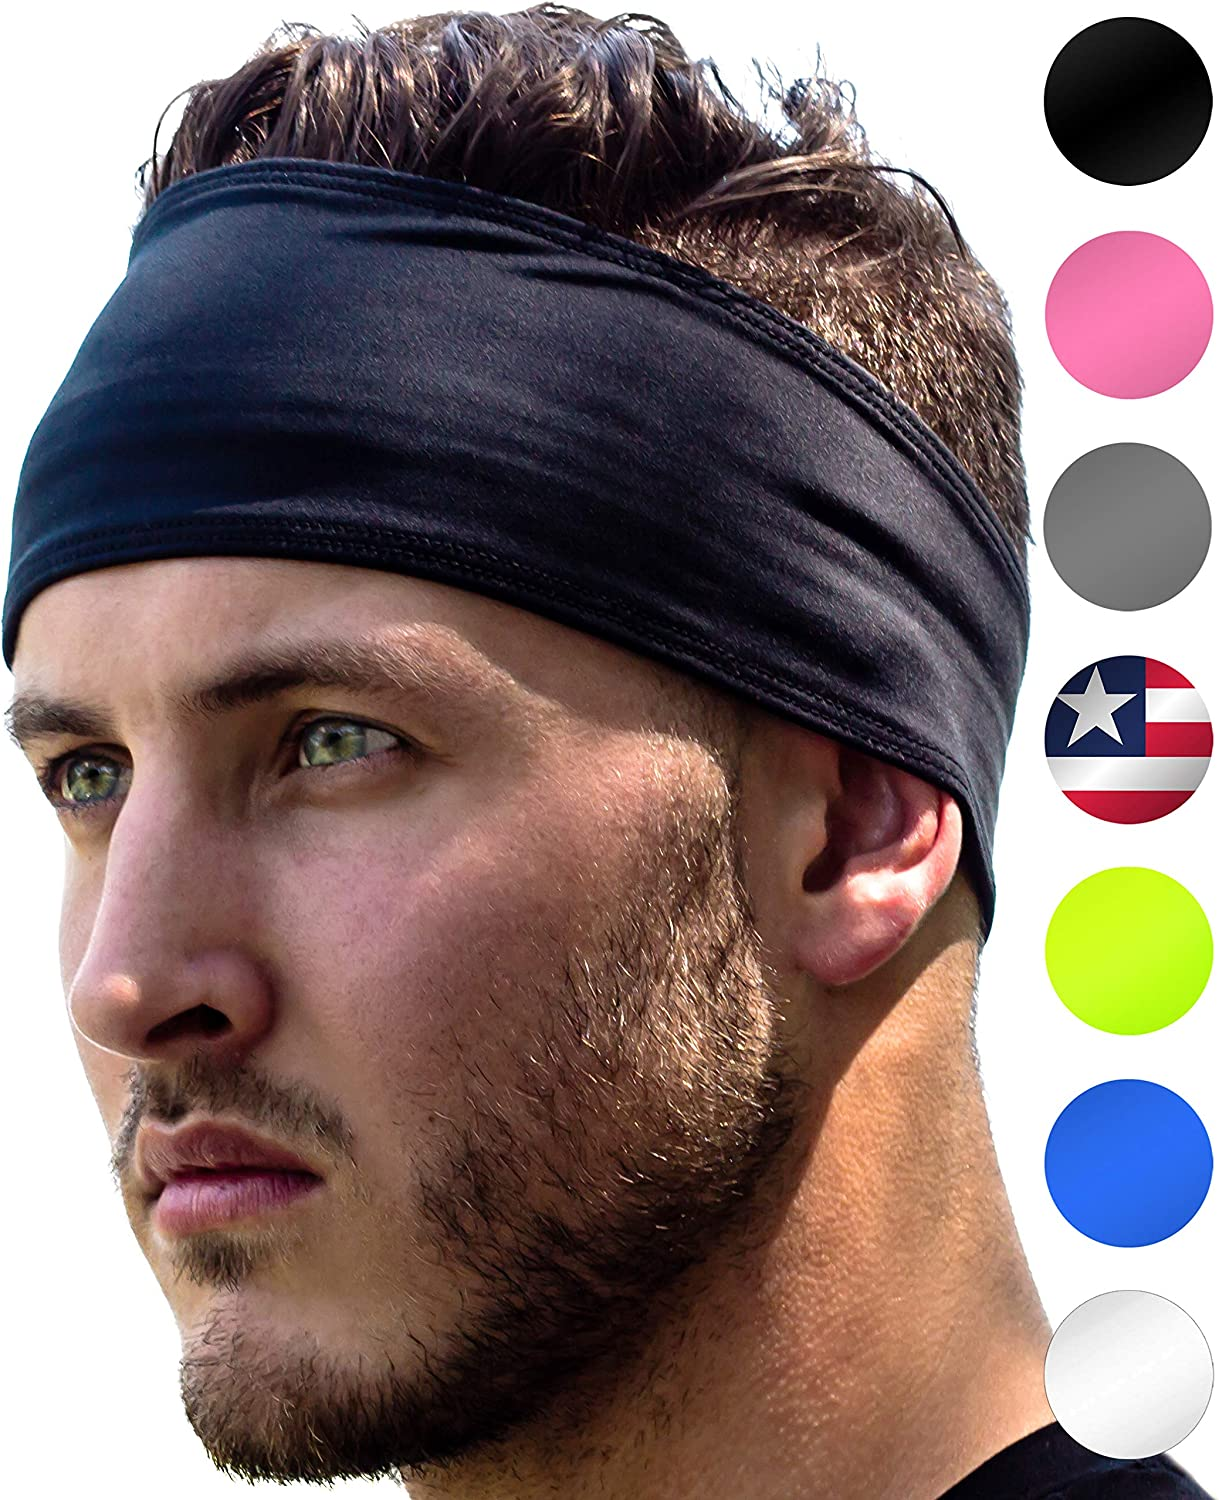 Sports Headbands: UNISEX Design With Inner Grip Strip to Keep Headband Securely in Place | Fits ALL HEAD SIZES | Sweat Wicking Fabric to Keep your Head Dry & Cool. Fits Under Helmets too